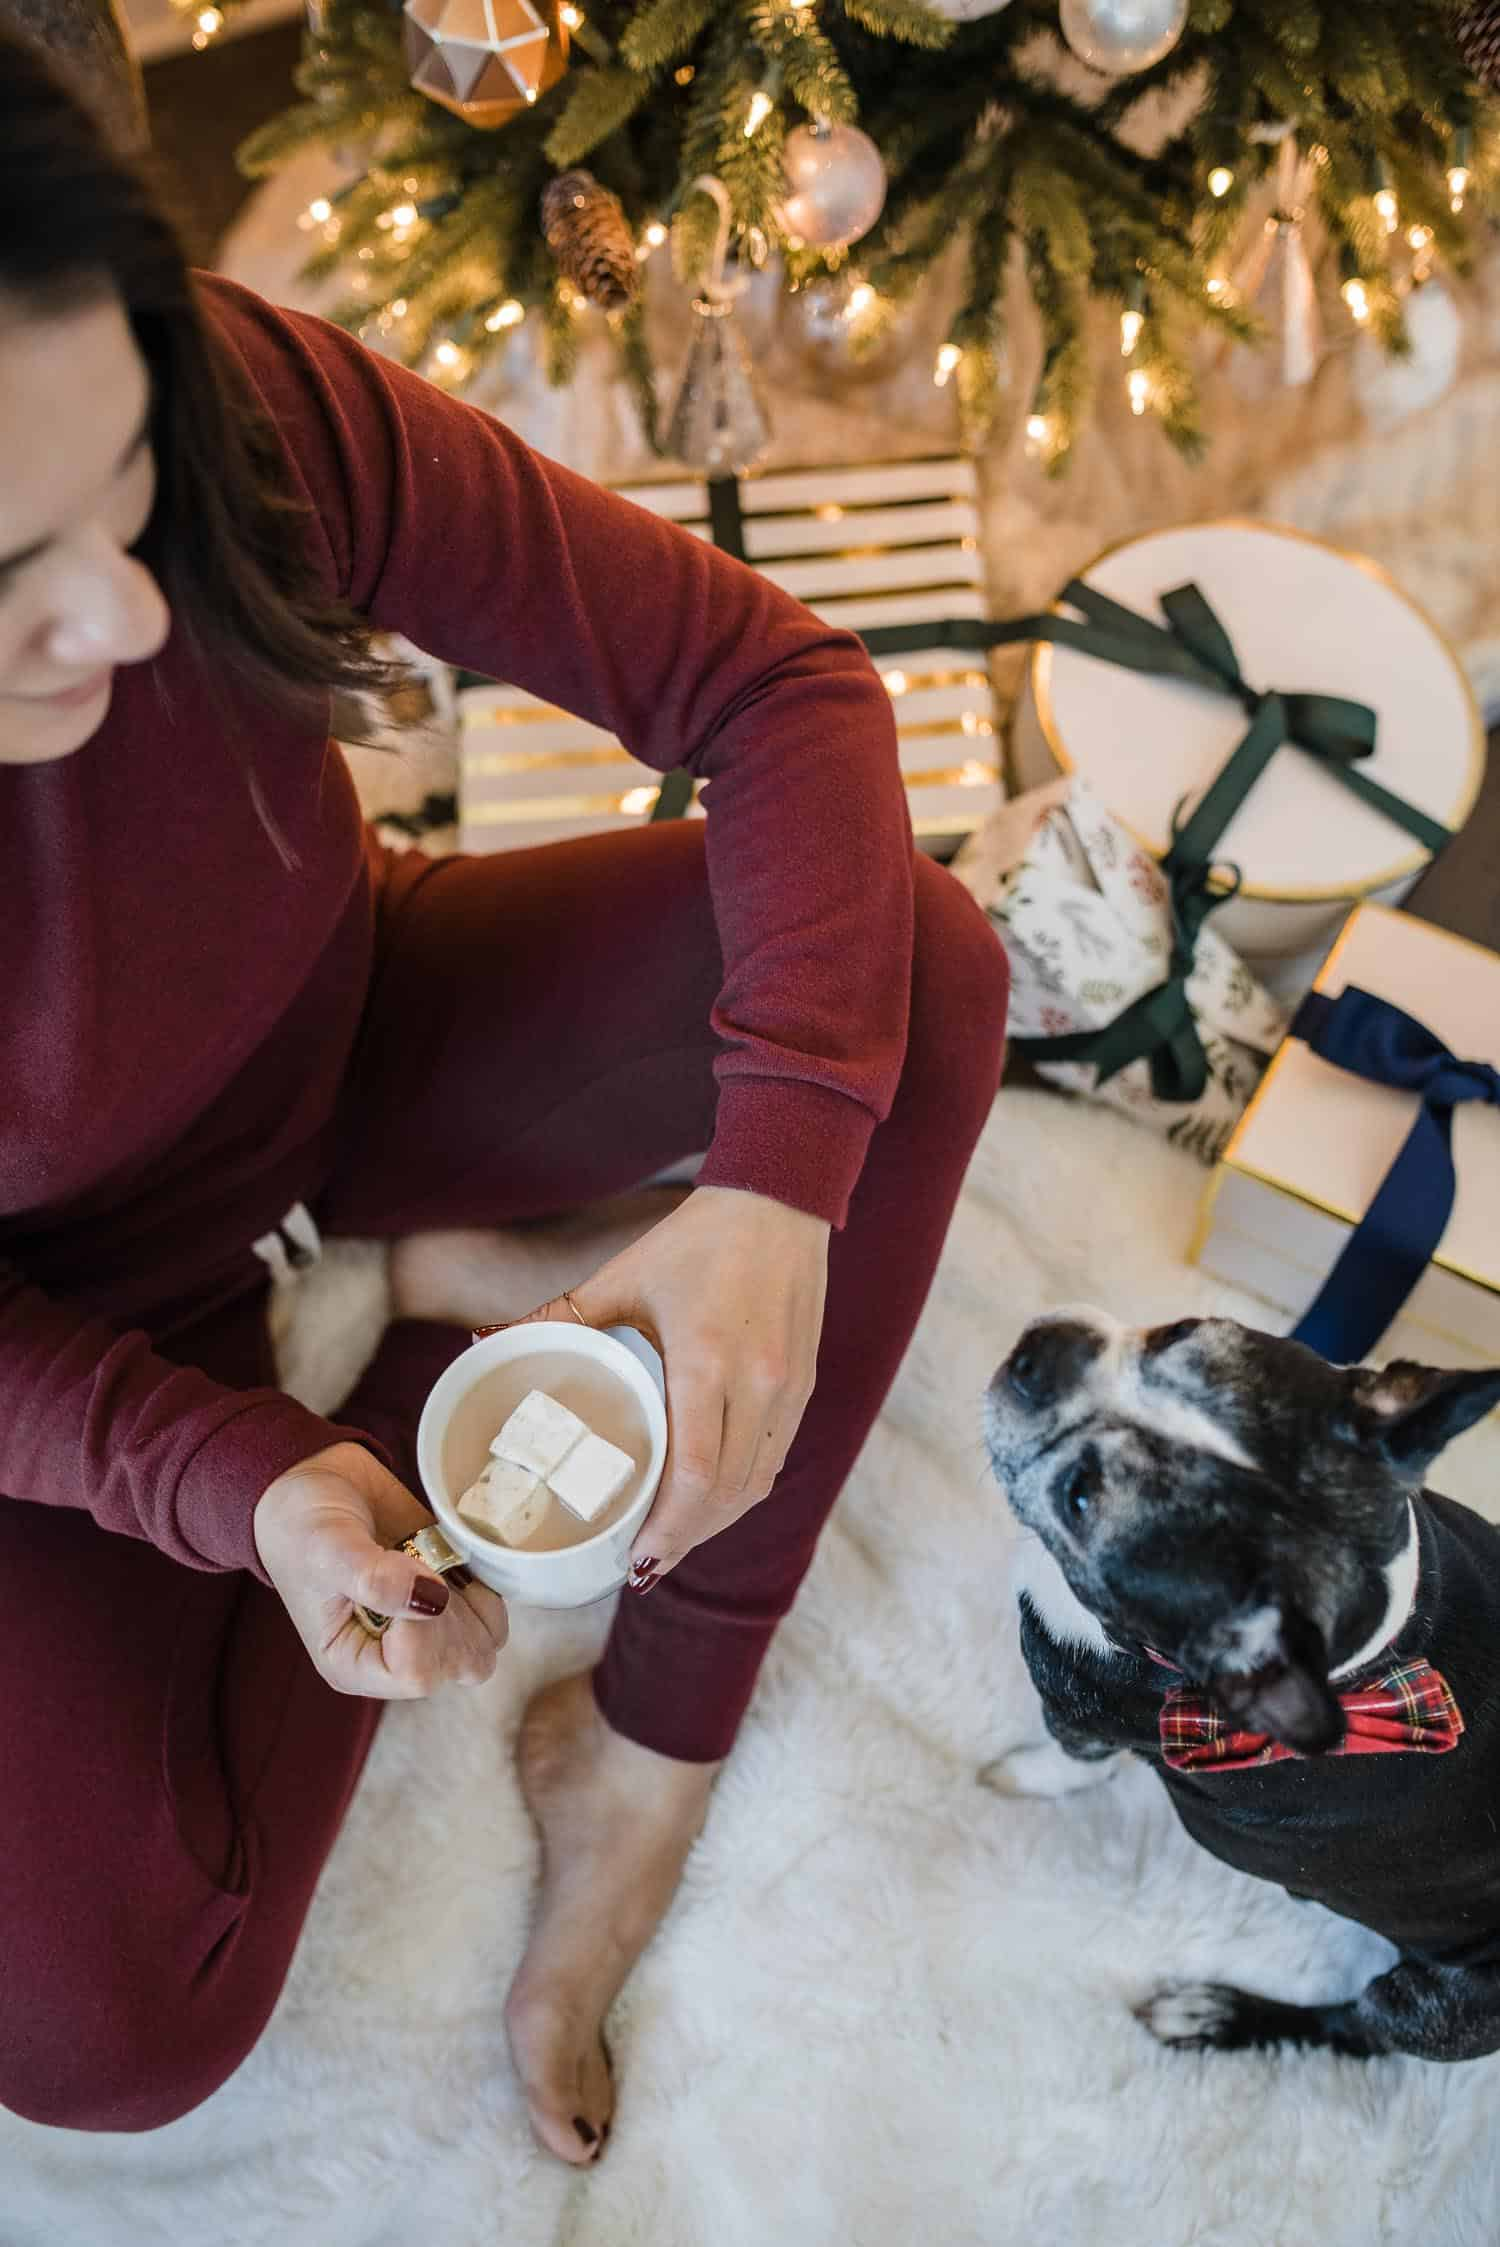 Jessica Spending Time  With Her Dog As One Of Her Christmas Traditions